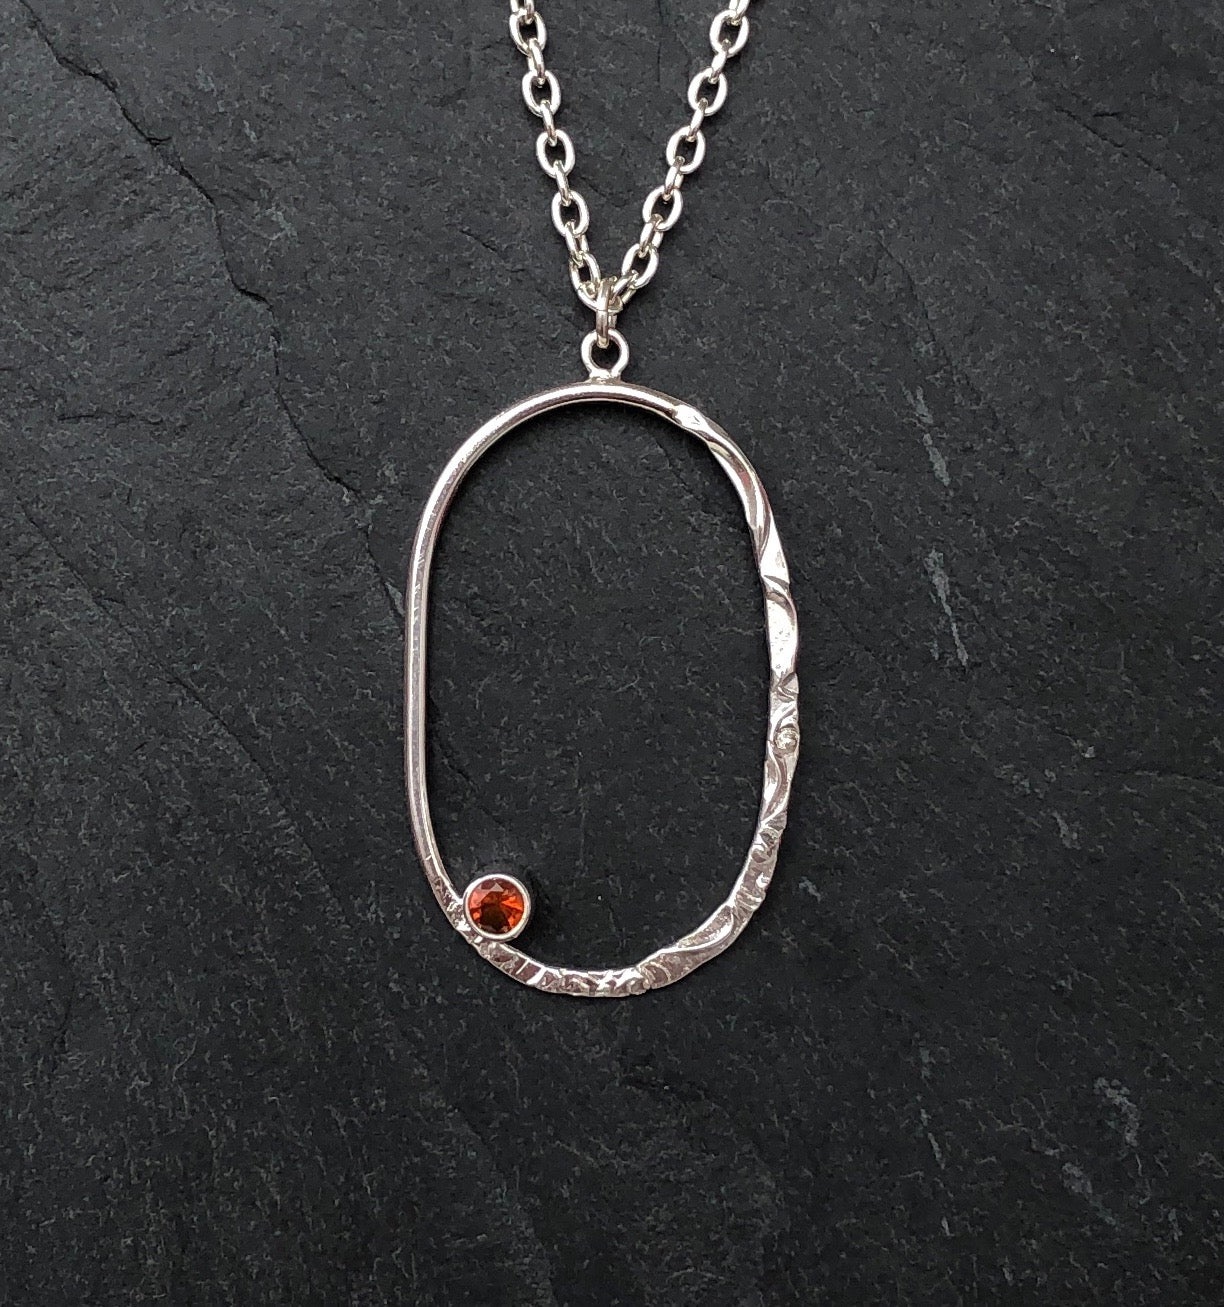 Close view of a Silver Oval Pendant with a Fire Opal  on a slate background